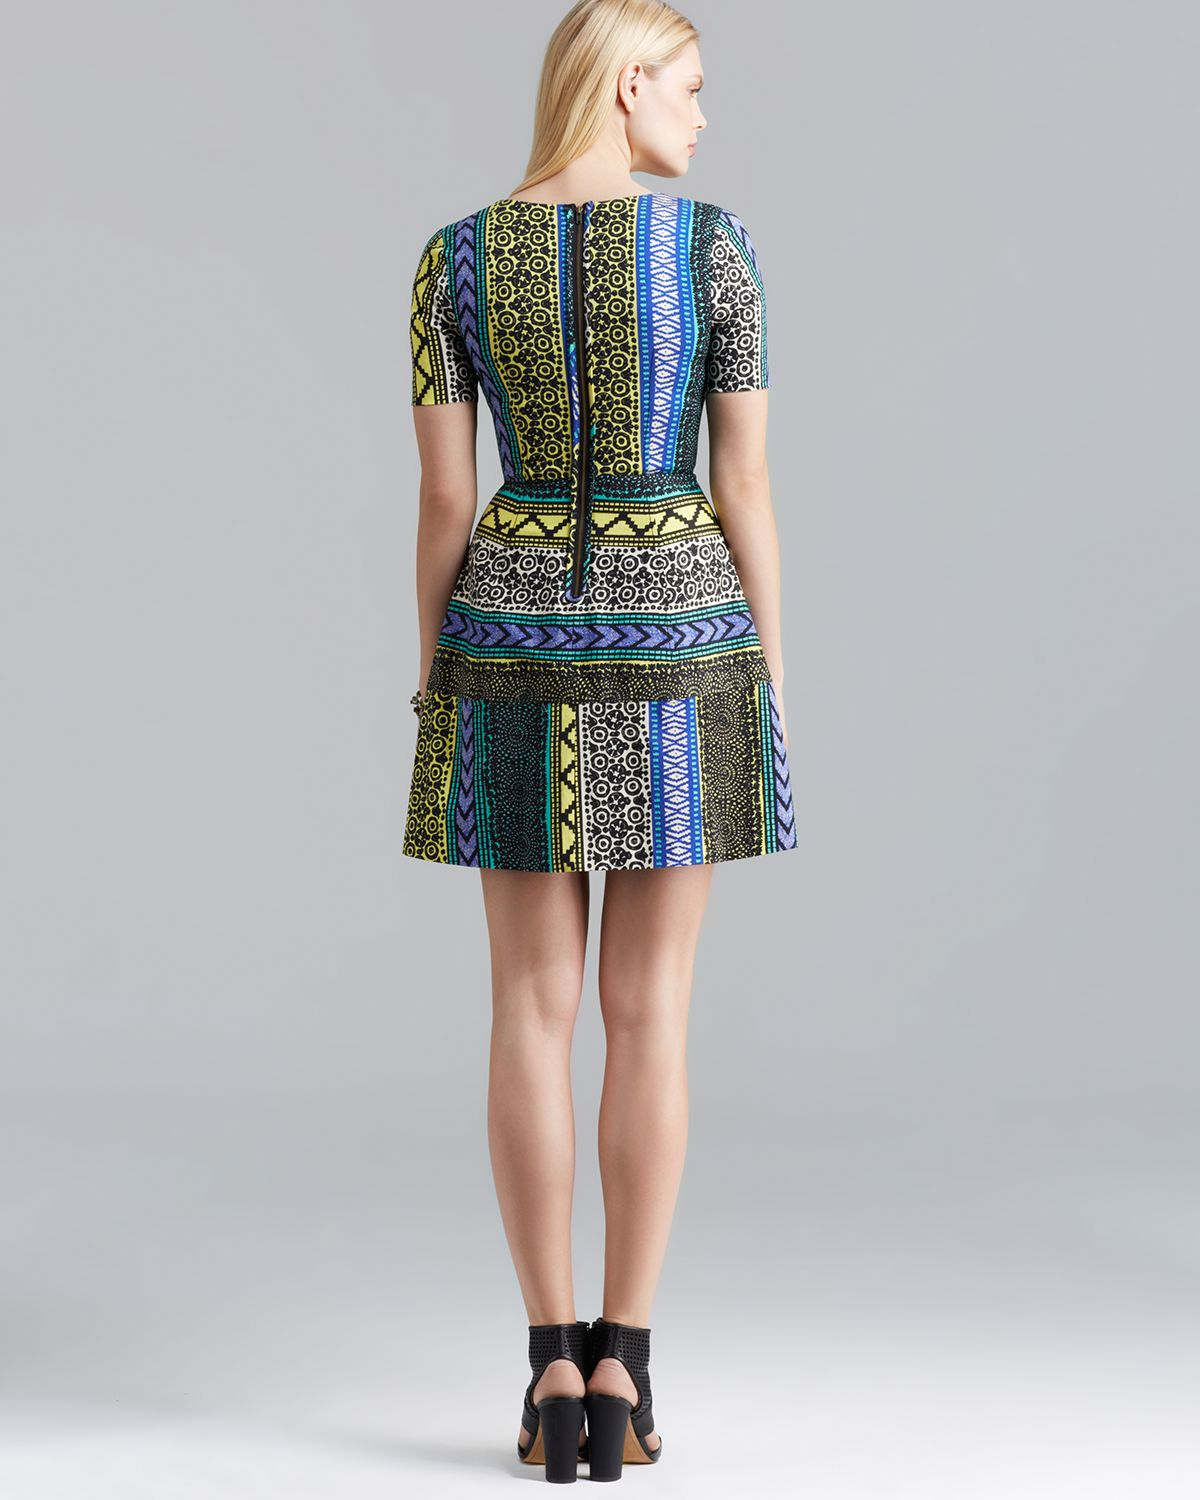 Tracy Reese Dress Directional Frock Tribal Print - Lyst-6075